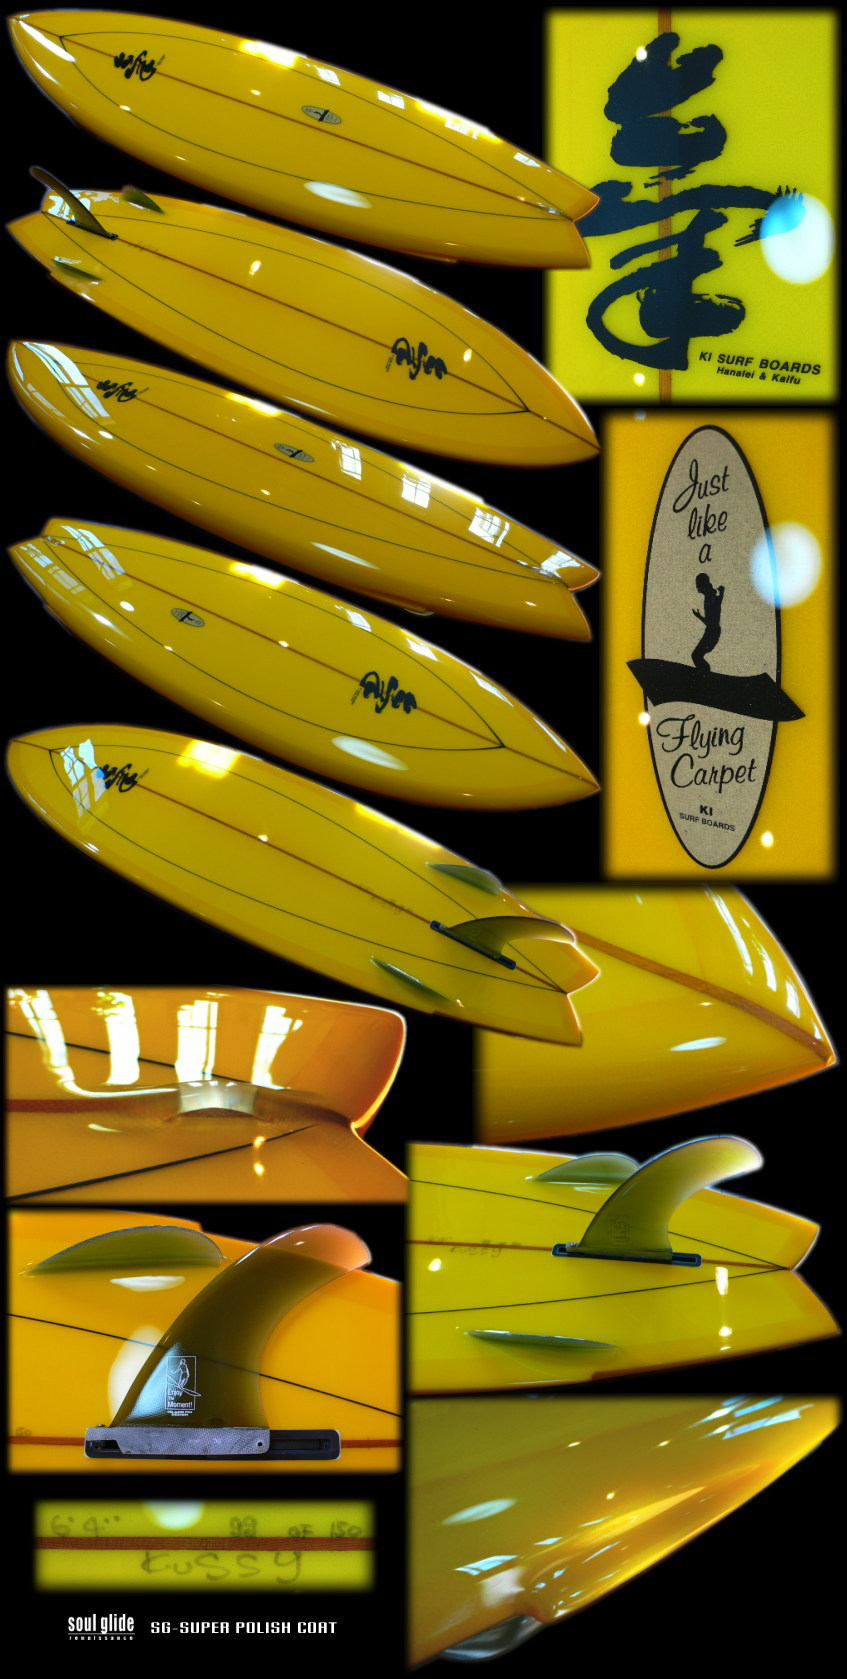 KI SURFBOARDS KI WING SWALLOW BONZER 64 YELLOW